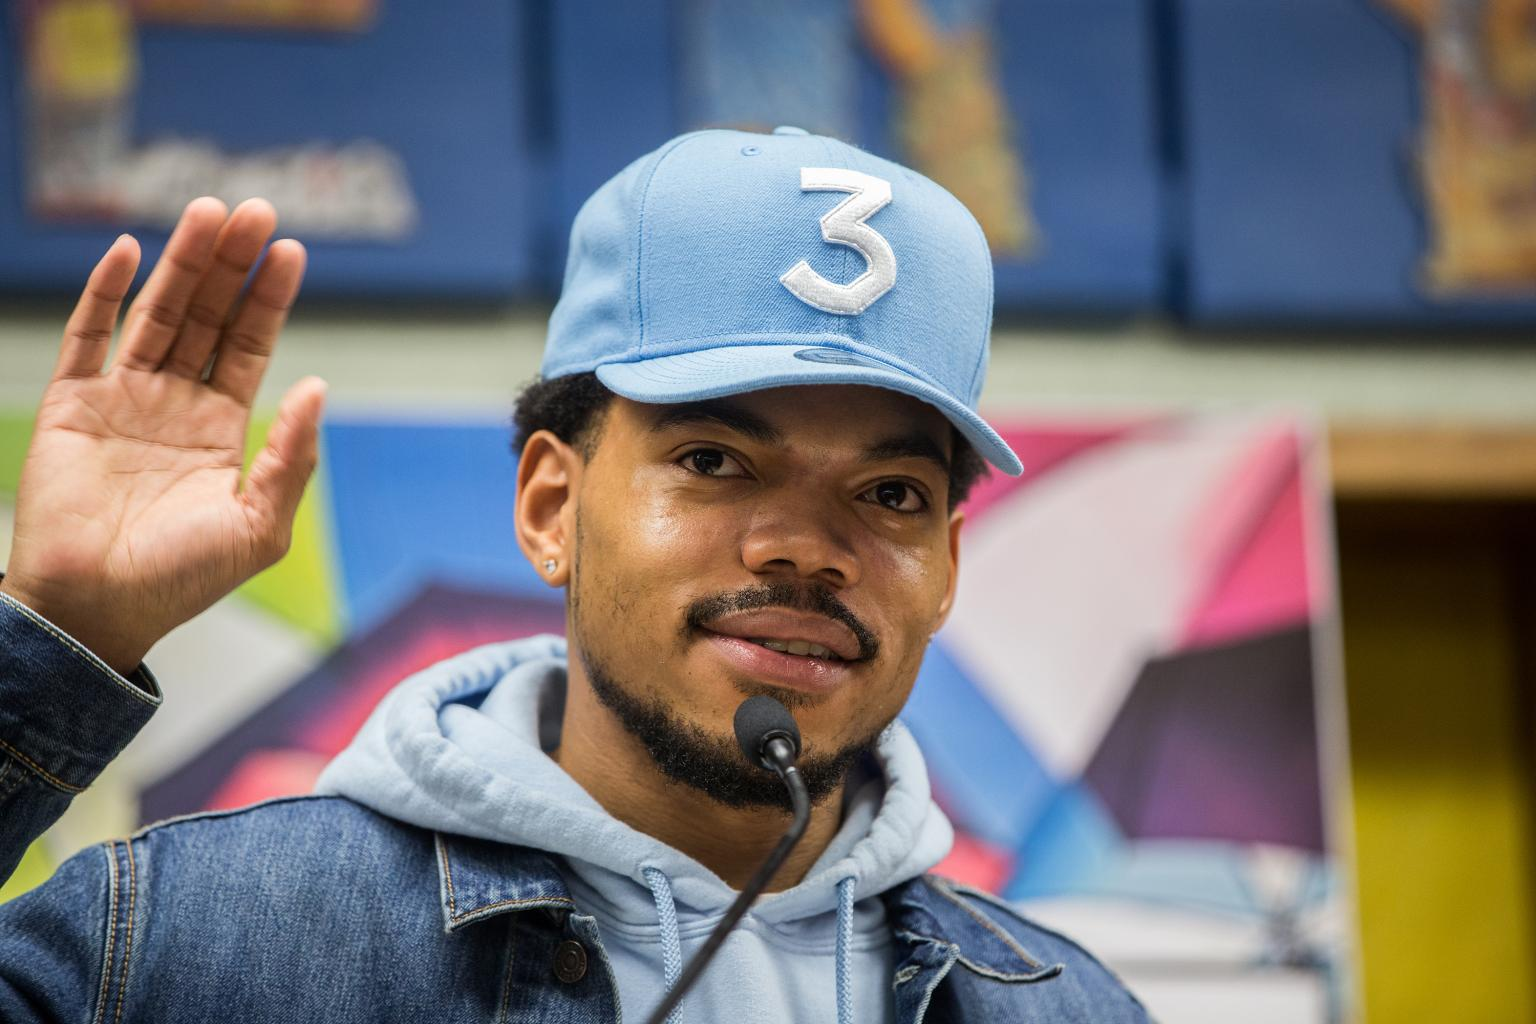 Chance The Rapper Donates $1 Million To Chicago  's Public School System, Students Respond With Open Letter